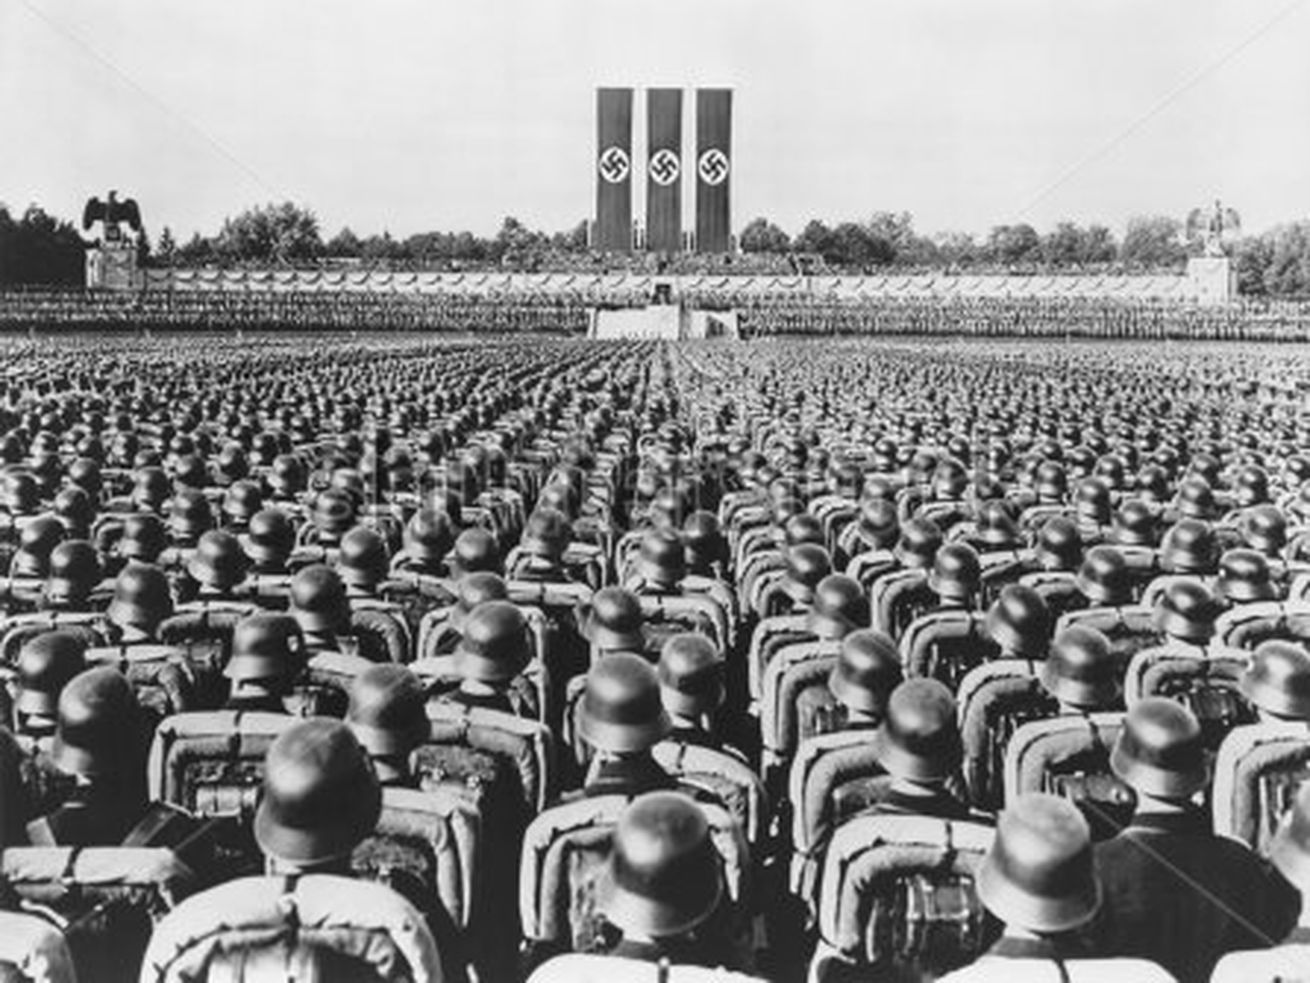 """Nearly 100,000 Nazi storm troopers are gathered to listen to a 1933 speech by Adolf Hitler on """"Brown Shirt Day."""""""